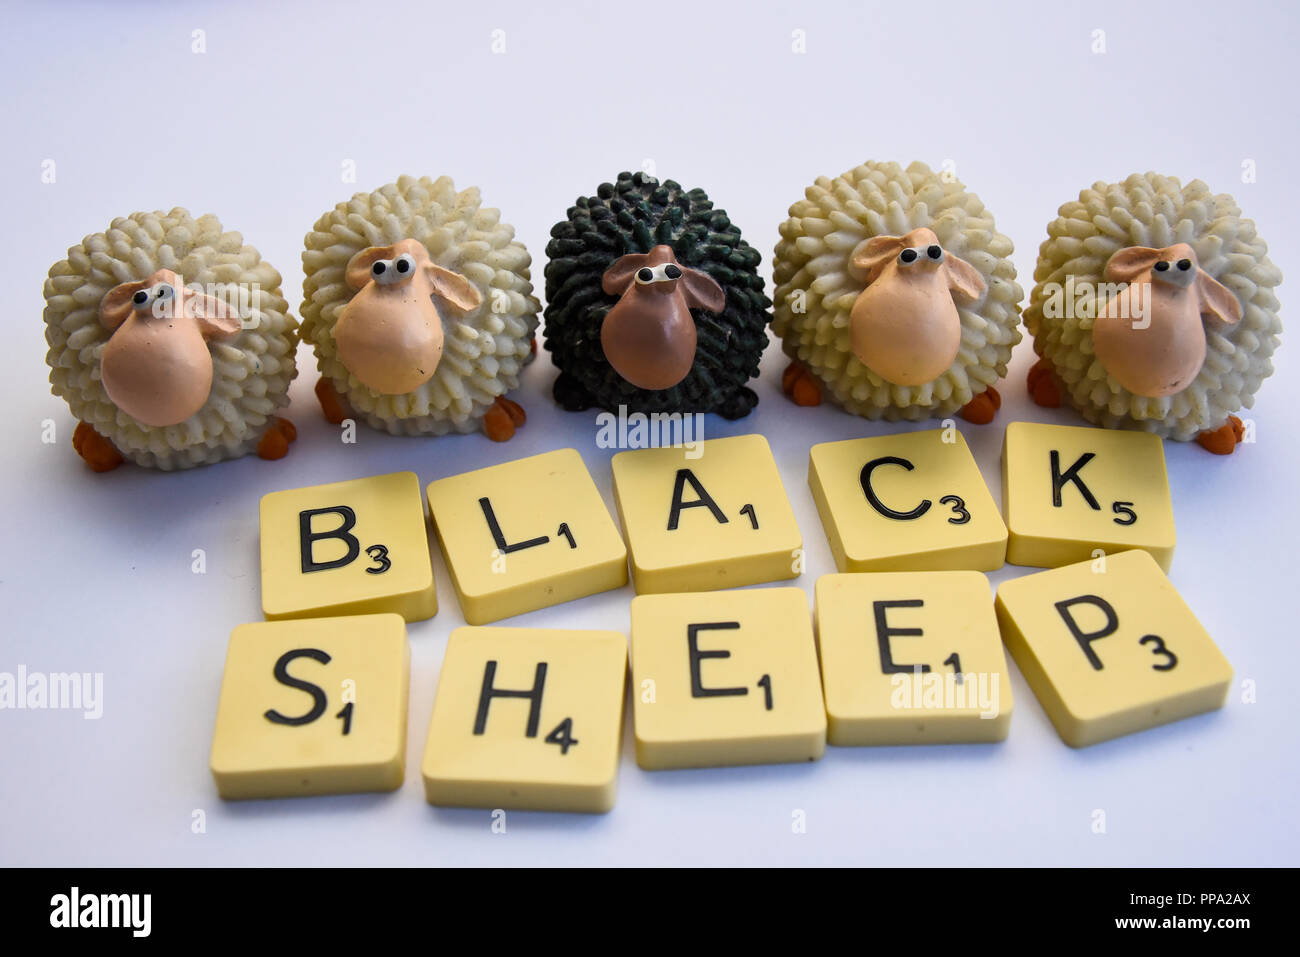 Black sheep among white sheep. Ethnic minority. Odd one out. Lonely. Idiom, conceptual, concept. Colour differences. Wayward, unique - Stock Image